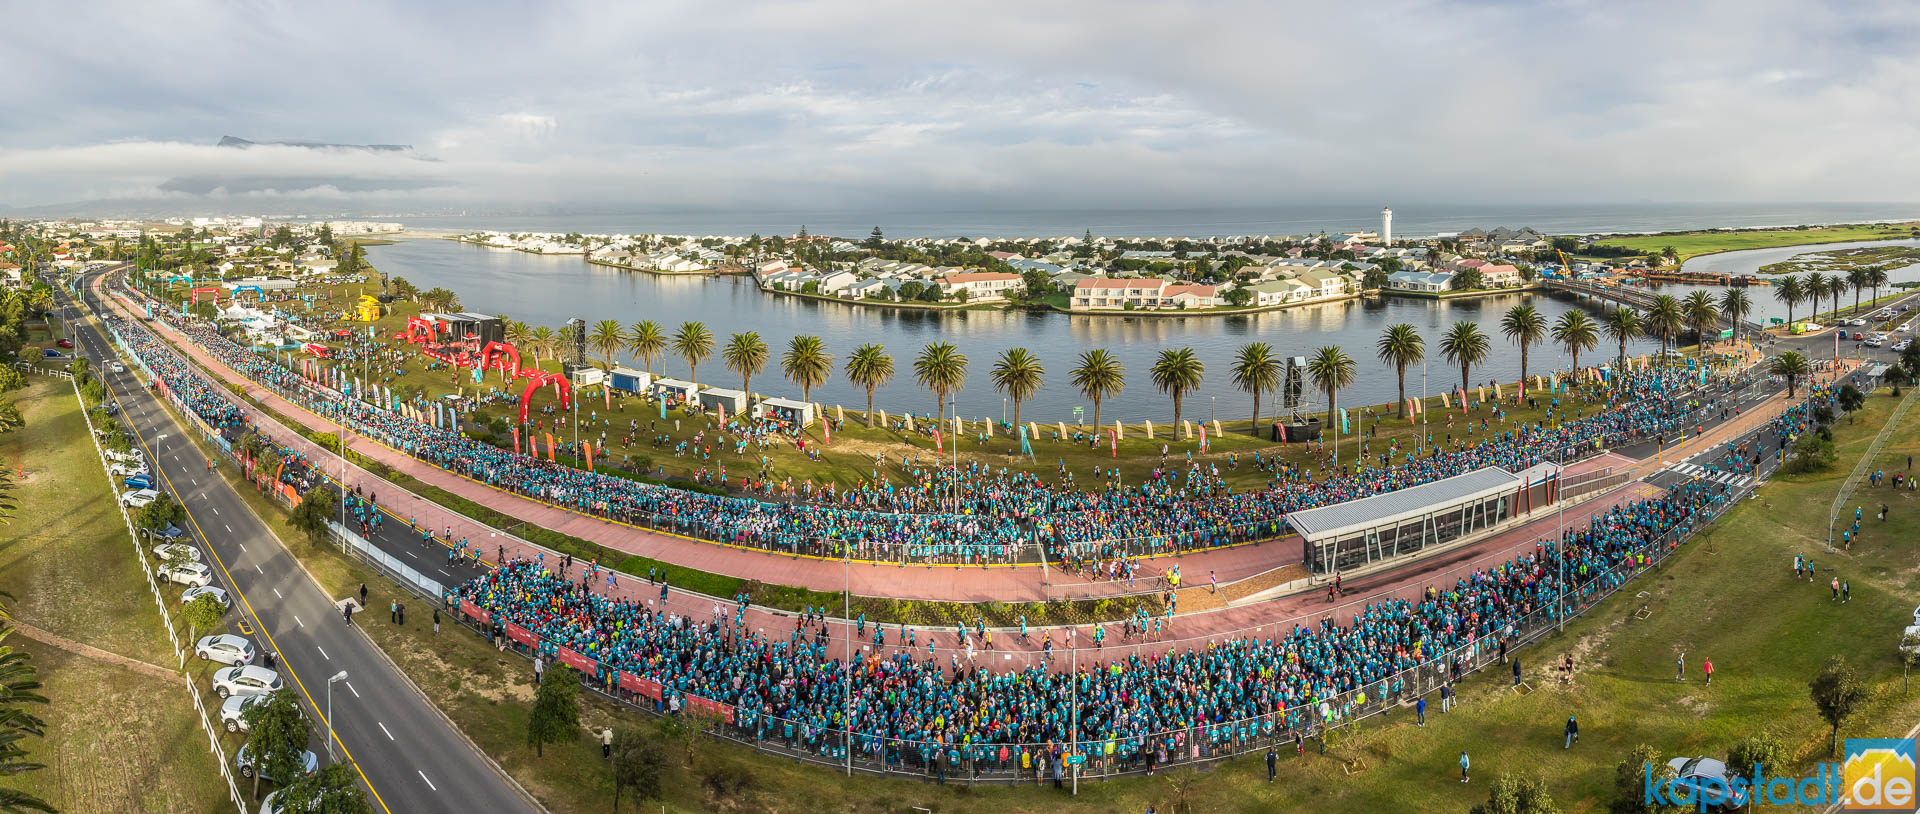 FNB Cape Town 12 ONERUN on 19.05.2019 (Start in Milnerton)